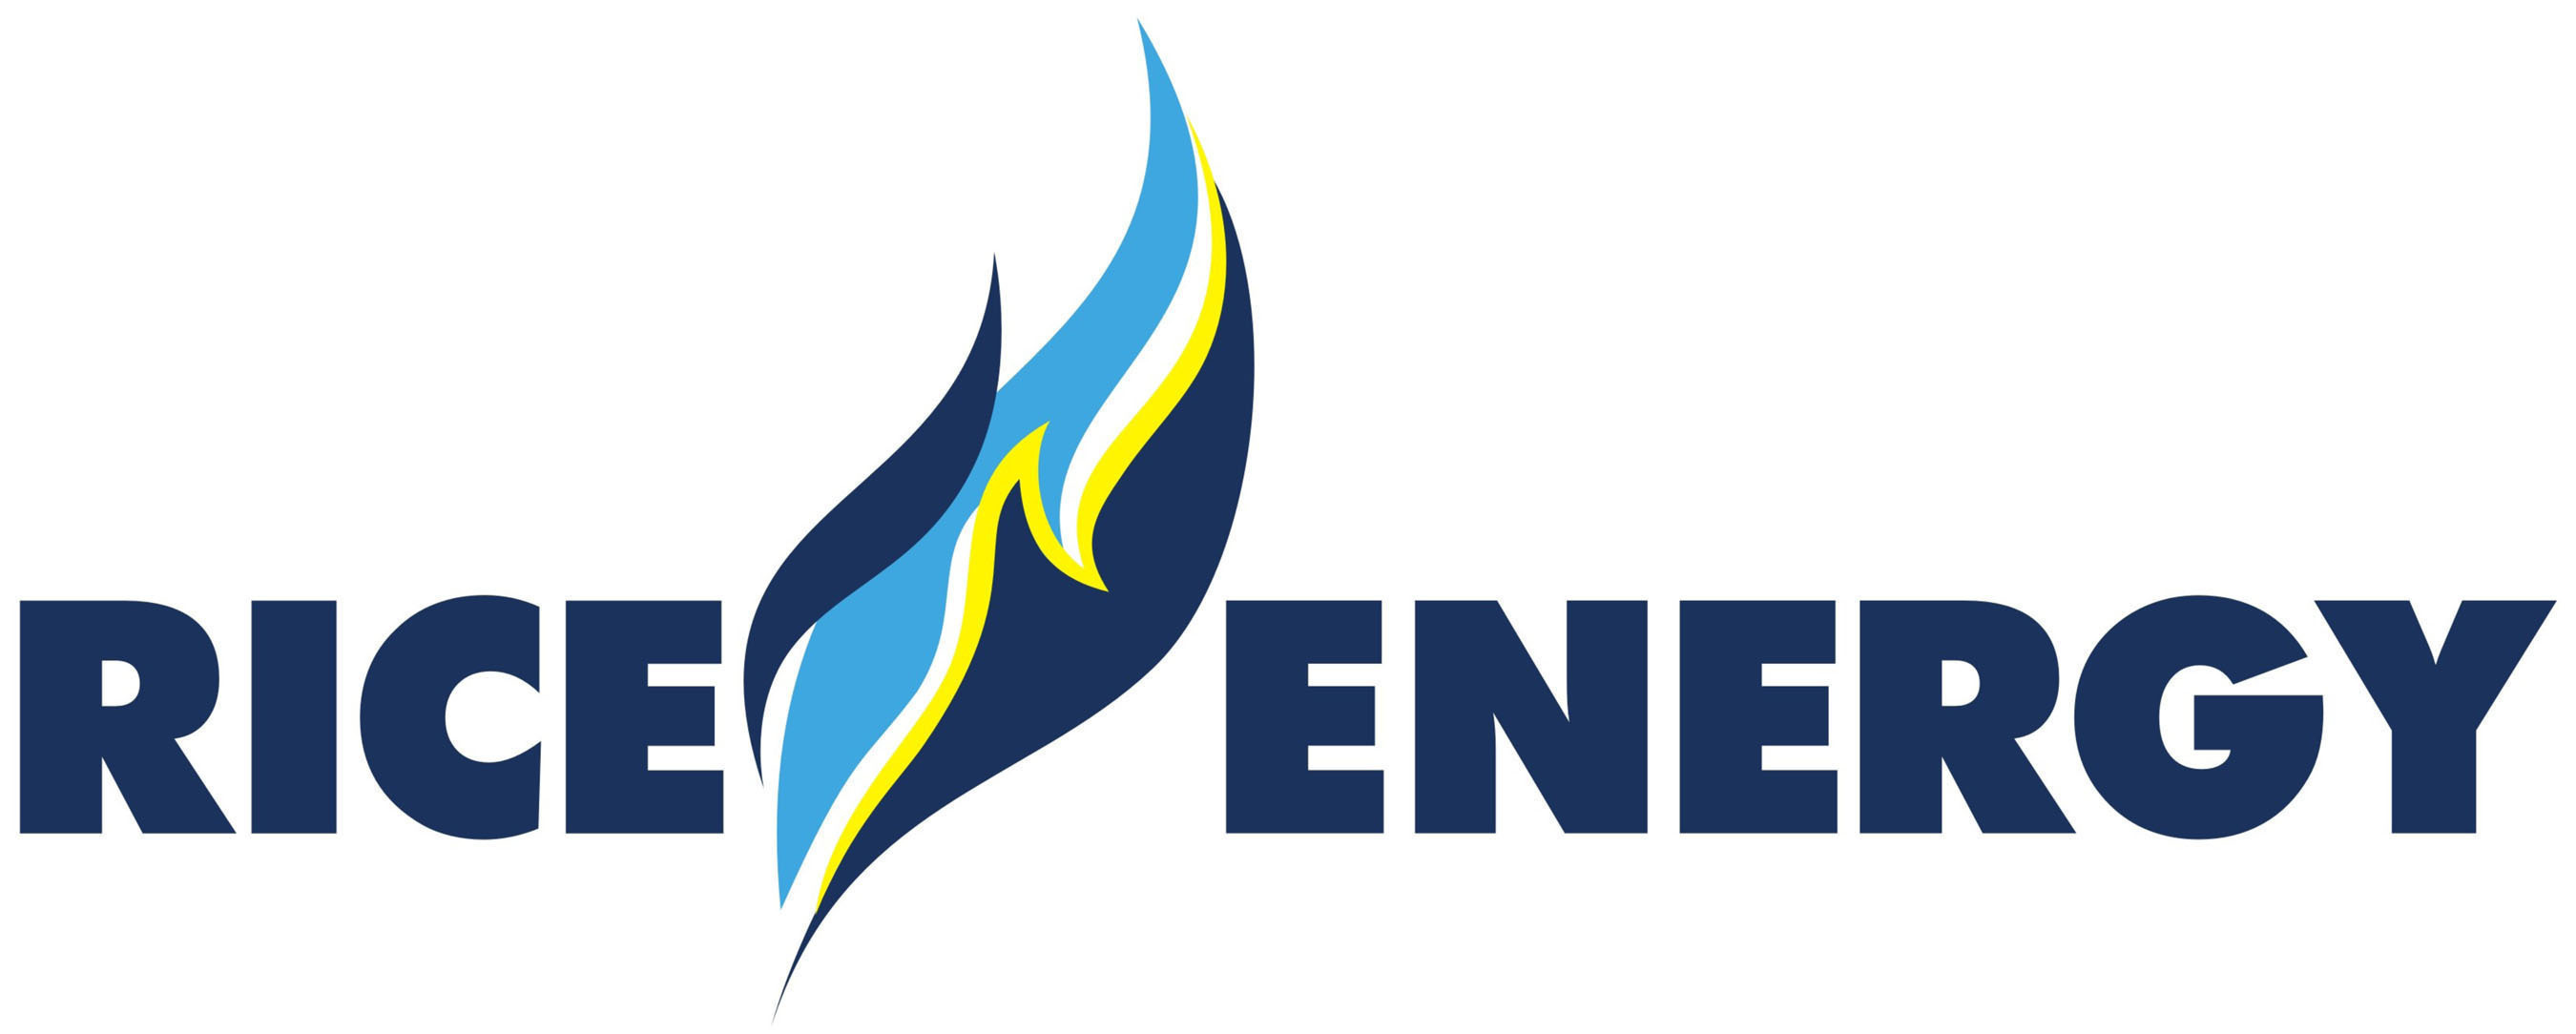 Rice Energy Schedules Date for Fourth Quarter and Year-End 2015 Results Conference Call